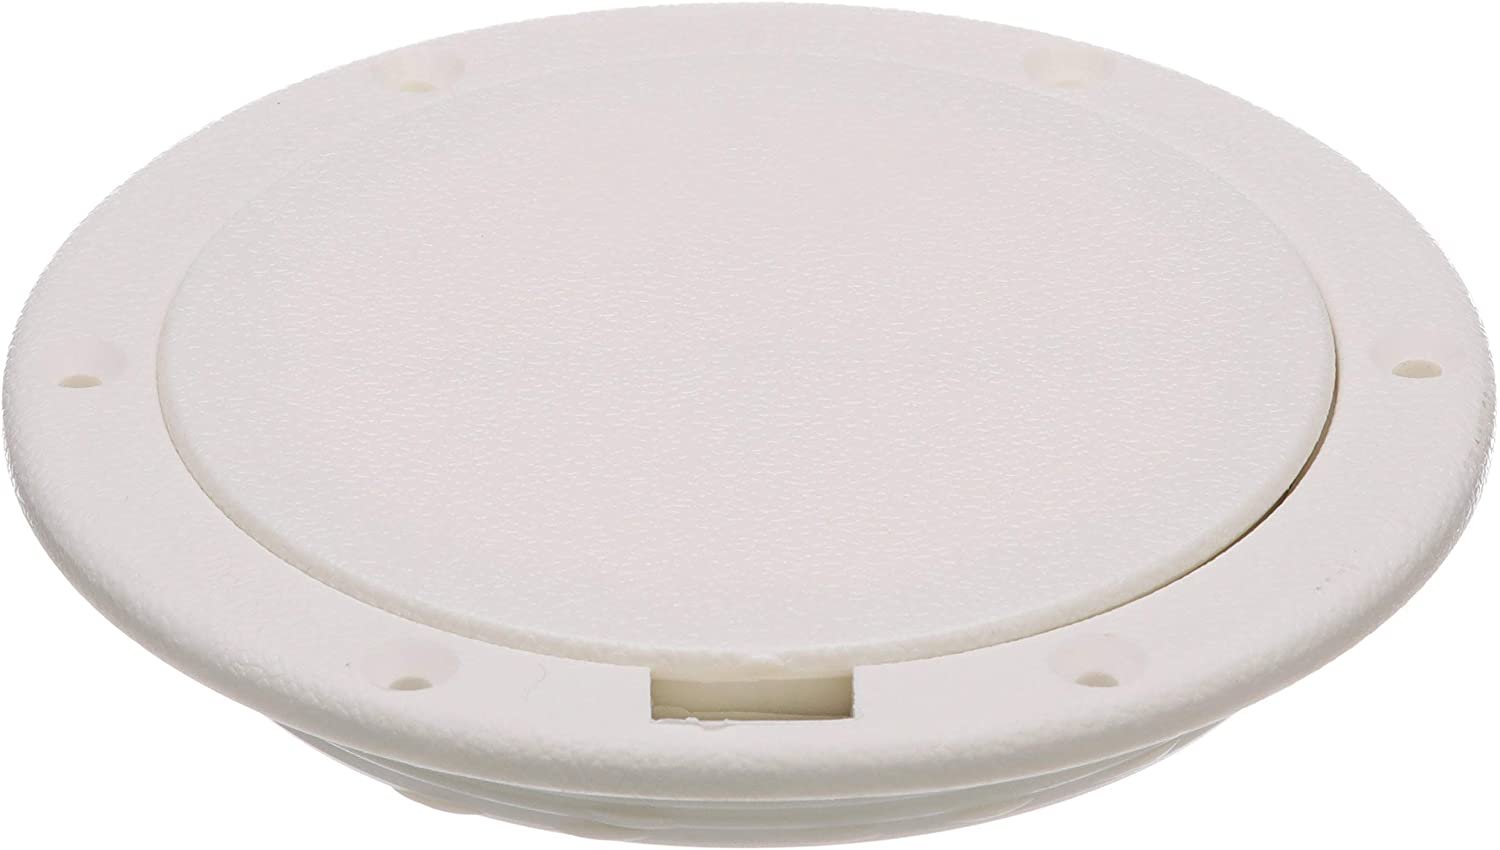 Seachoice 39501 OFFicial Pry-Up Max 70% OFF Deck – White Watertight Plate